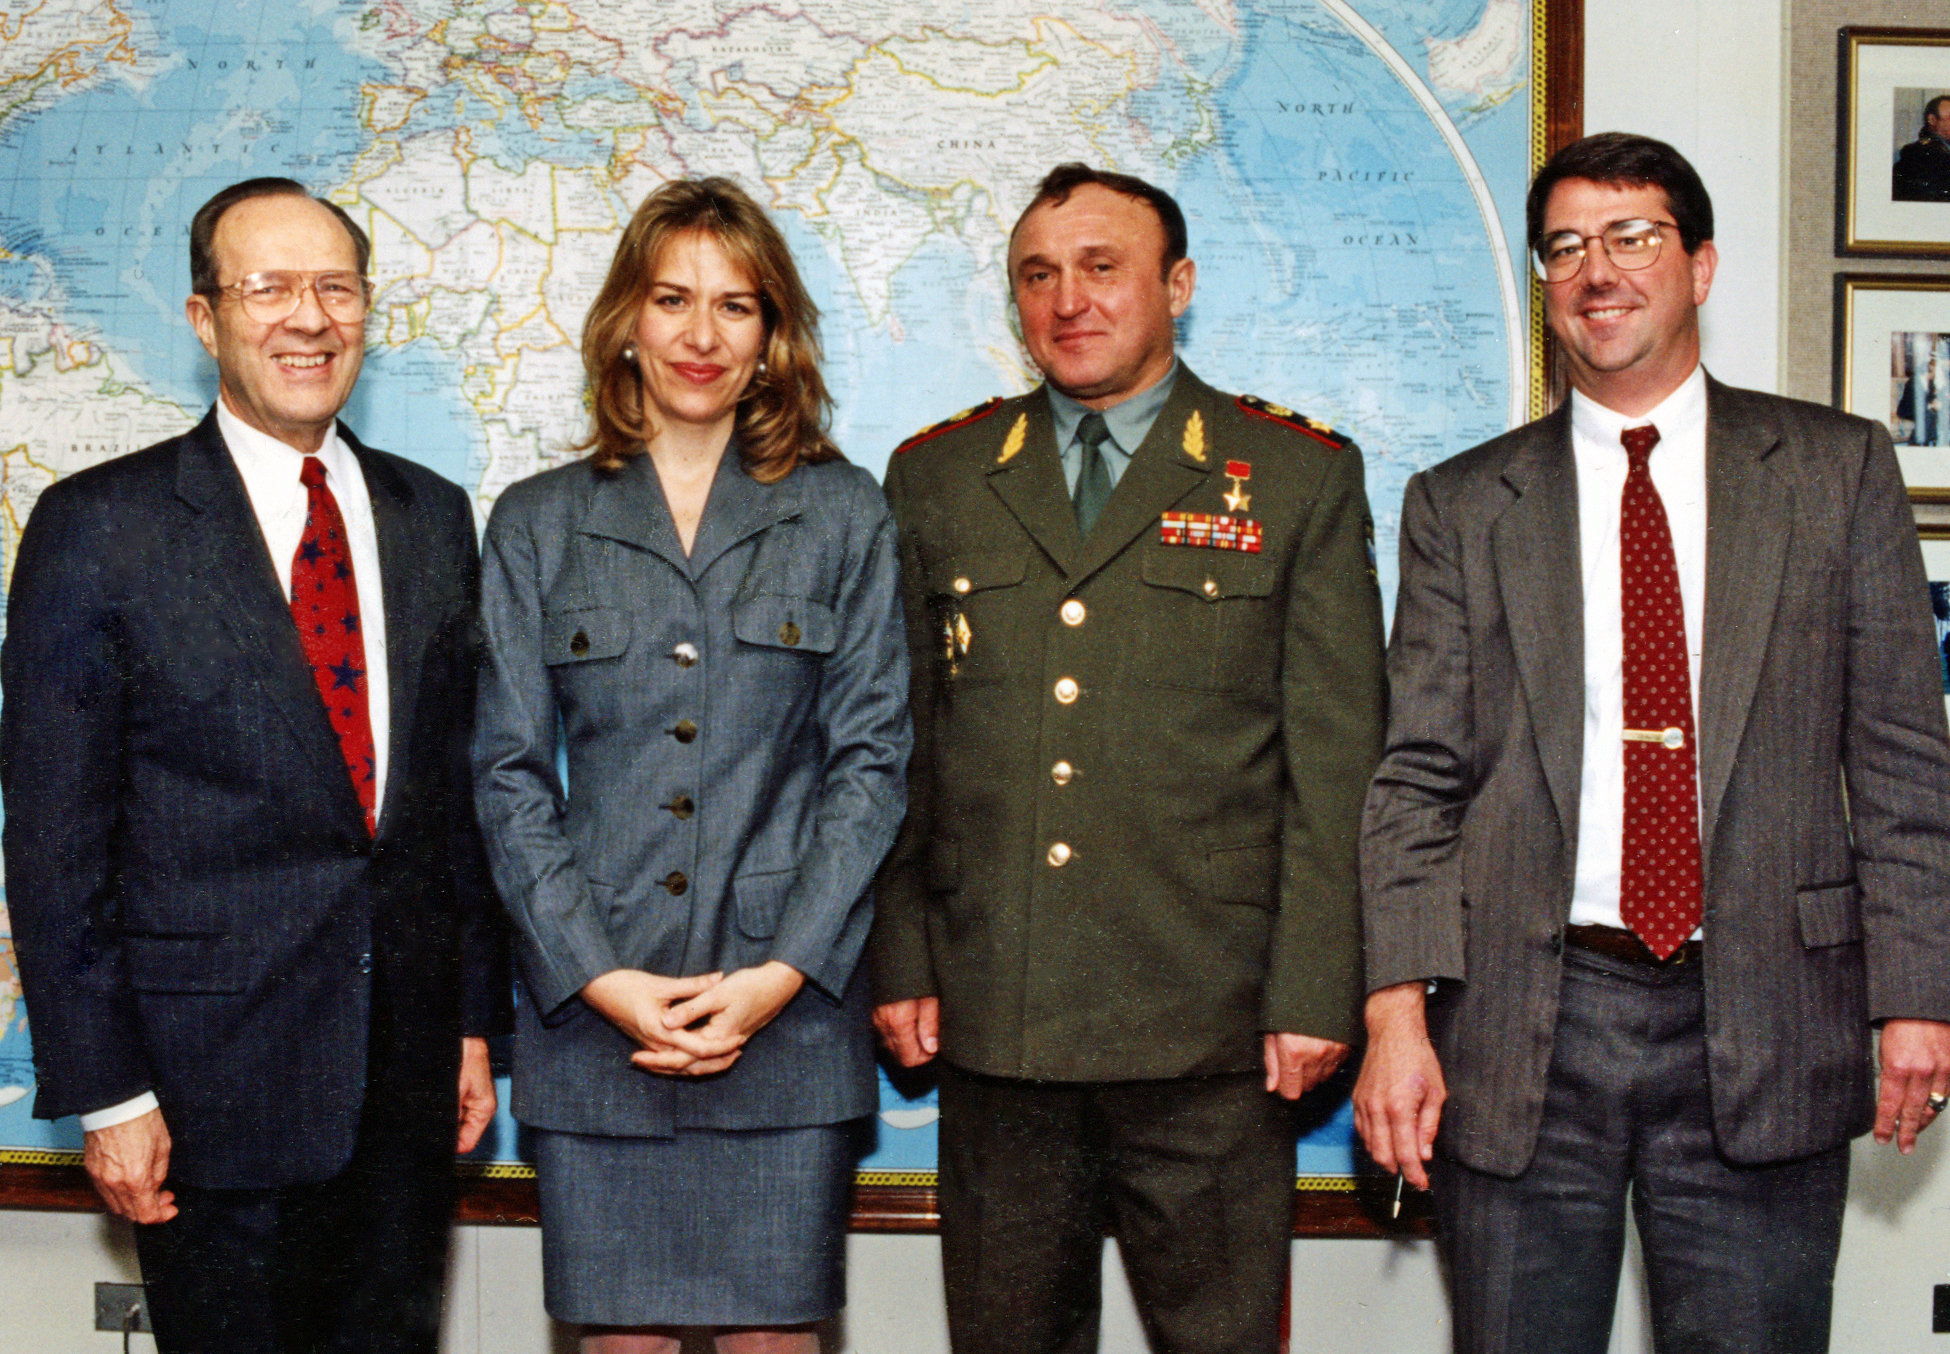 William Perry, Elizabeth Sherwood-Randall, Gen. Grachev, and Ash Carter